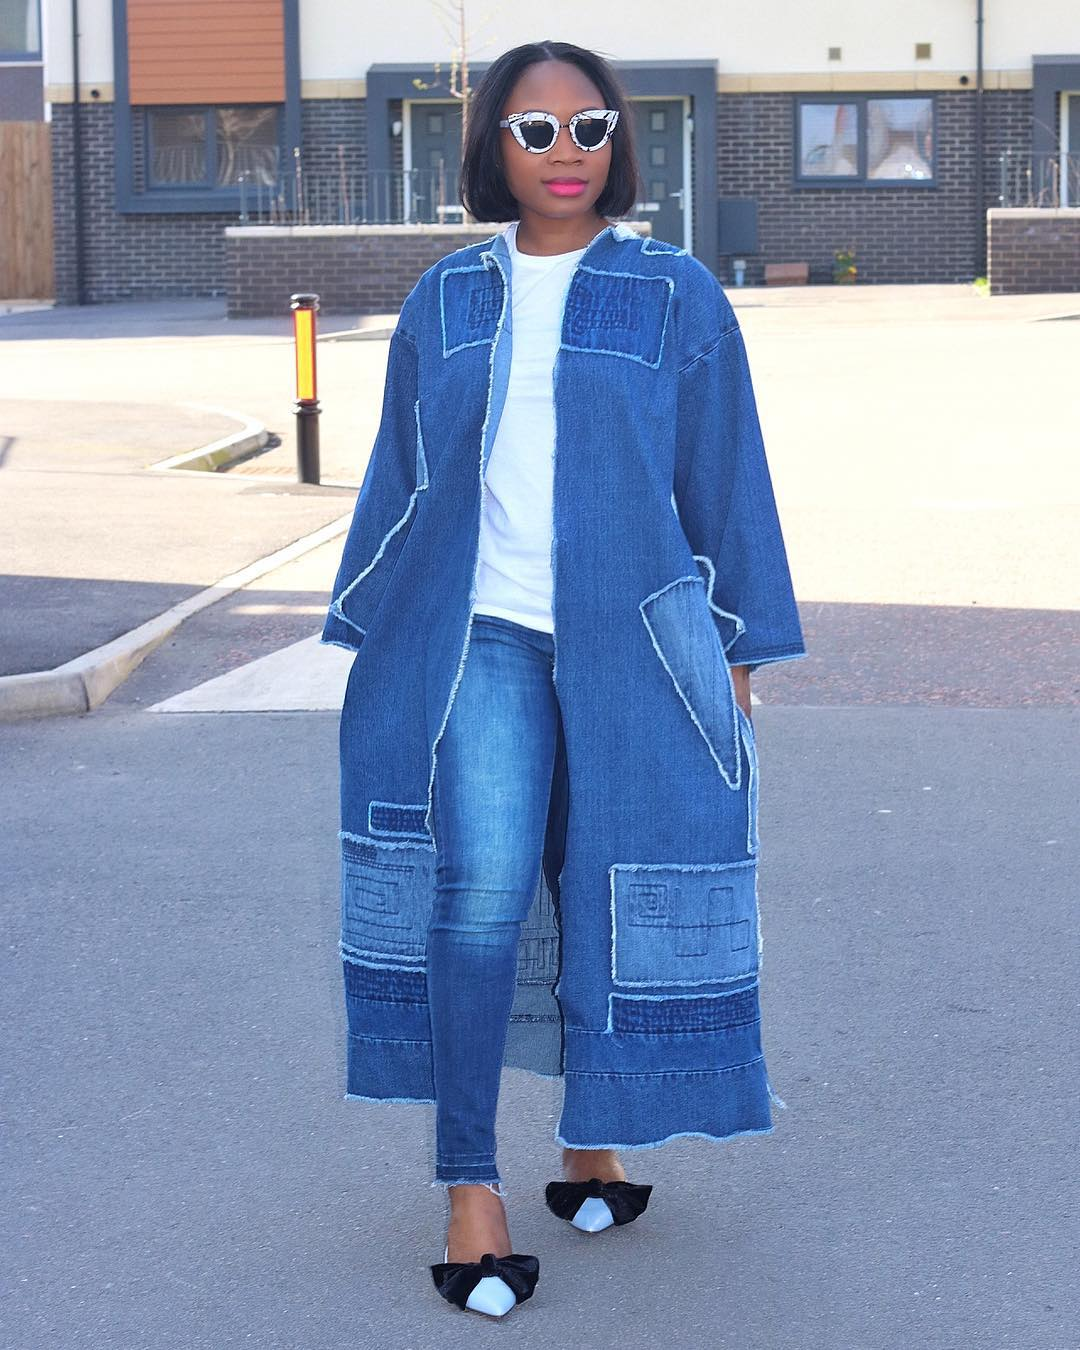 Damilola of Edaowo Fashion in her oversized denim jacket and lush bow Zara shoes.